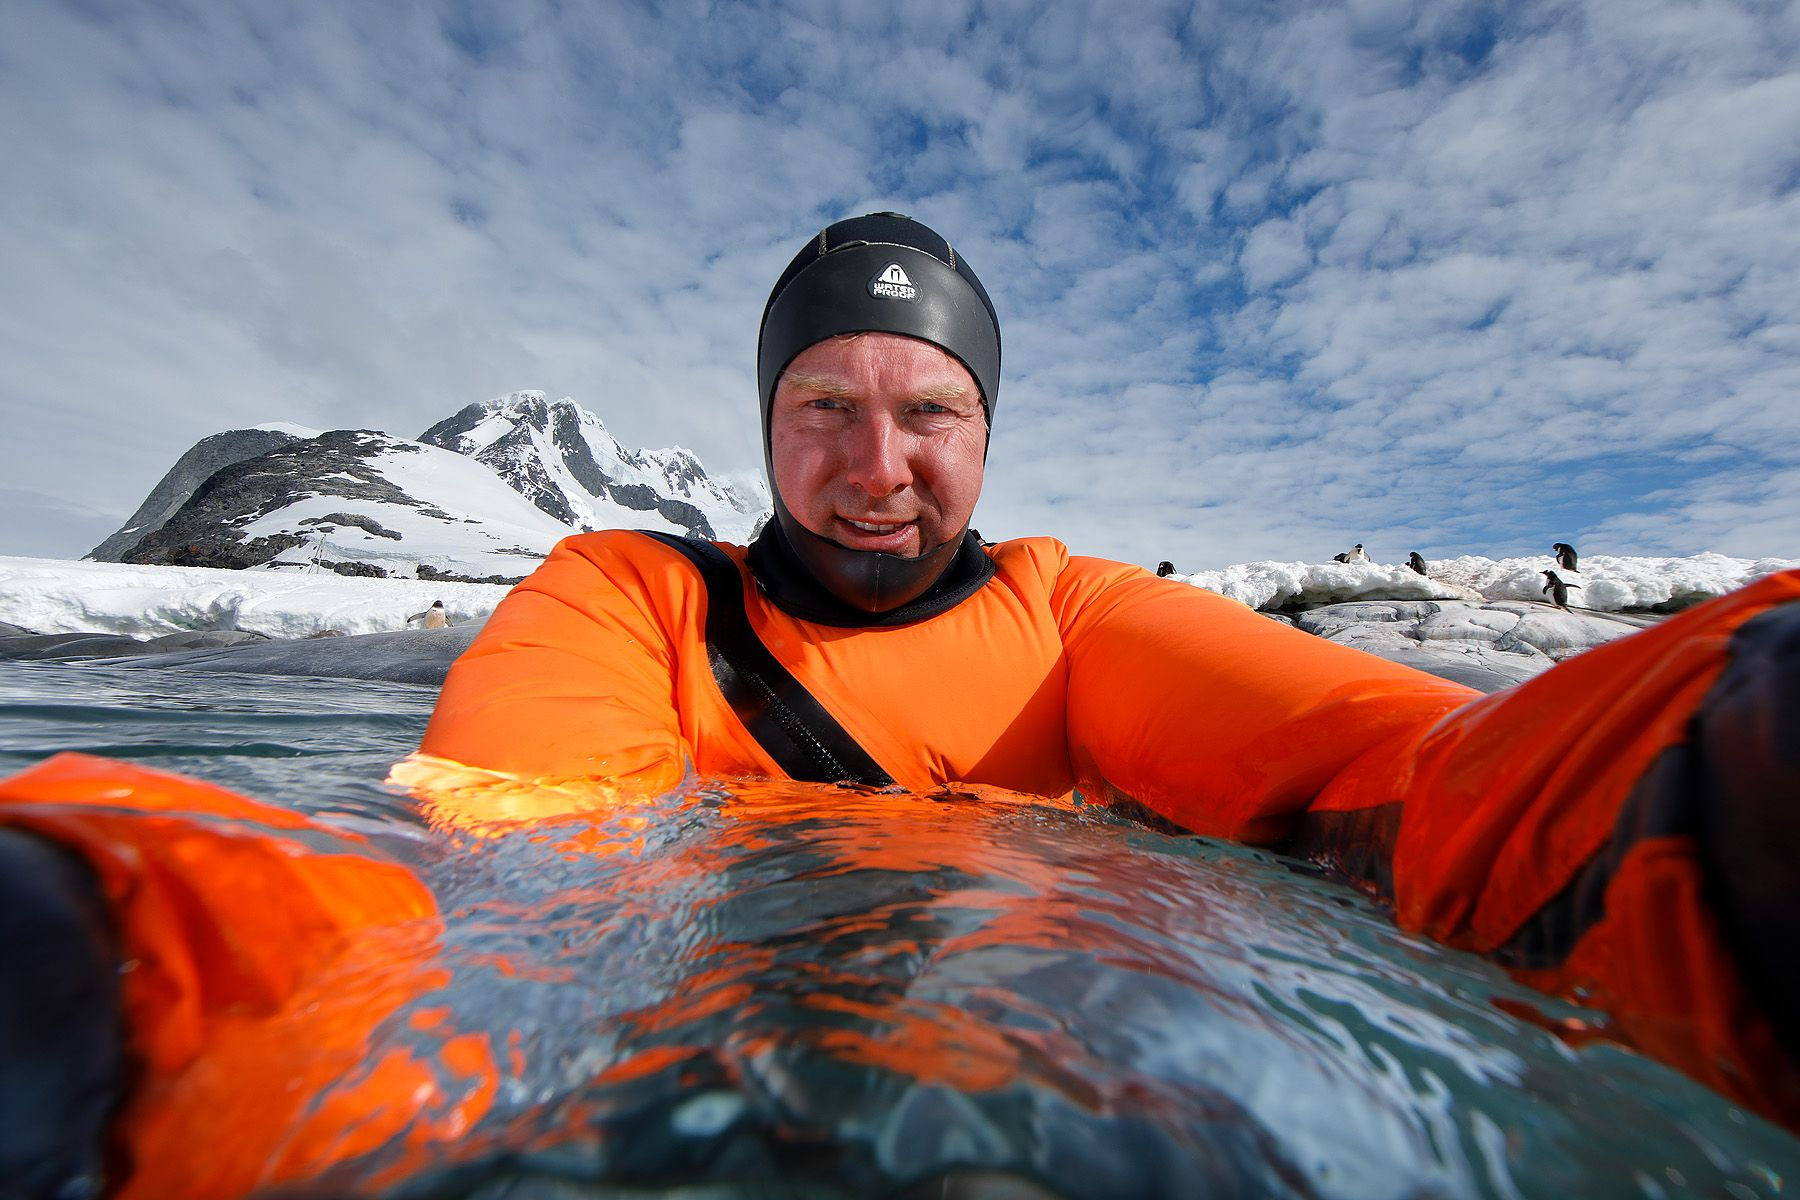 Clemens in freezing cold water_83A6884-Port Charcot, Booth Island, Antarctica.jpg